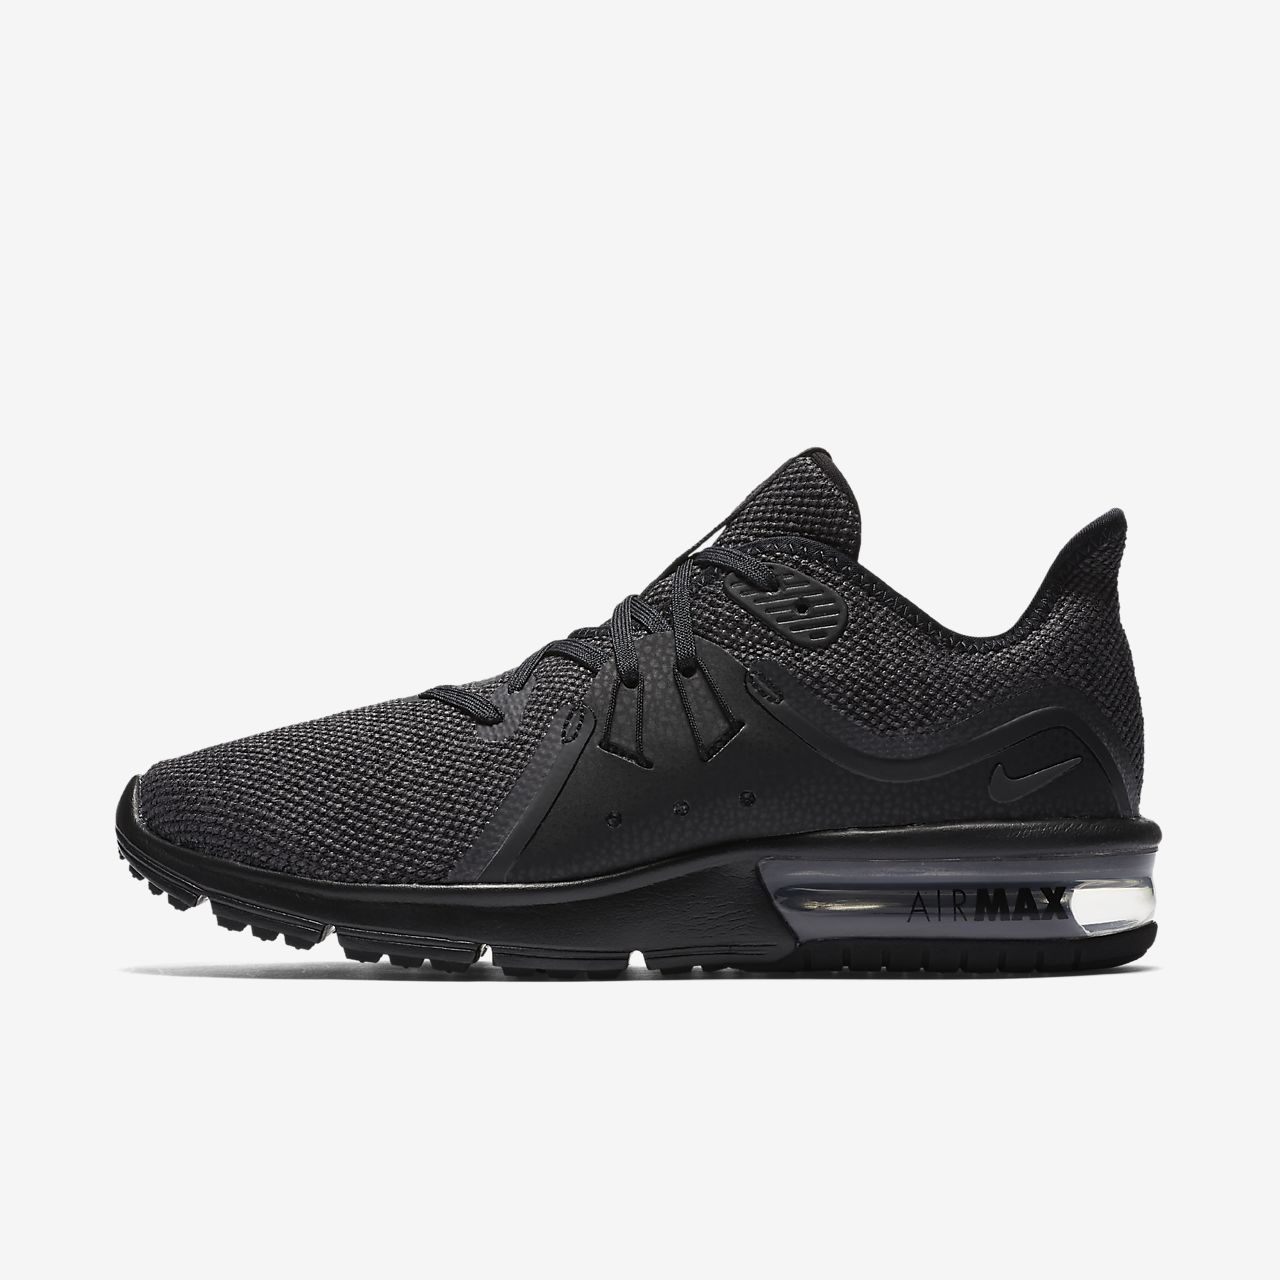 Calzado para mujer Nike Air Max Sequent Sequent Sequent 3. Nike MX 2723e5